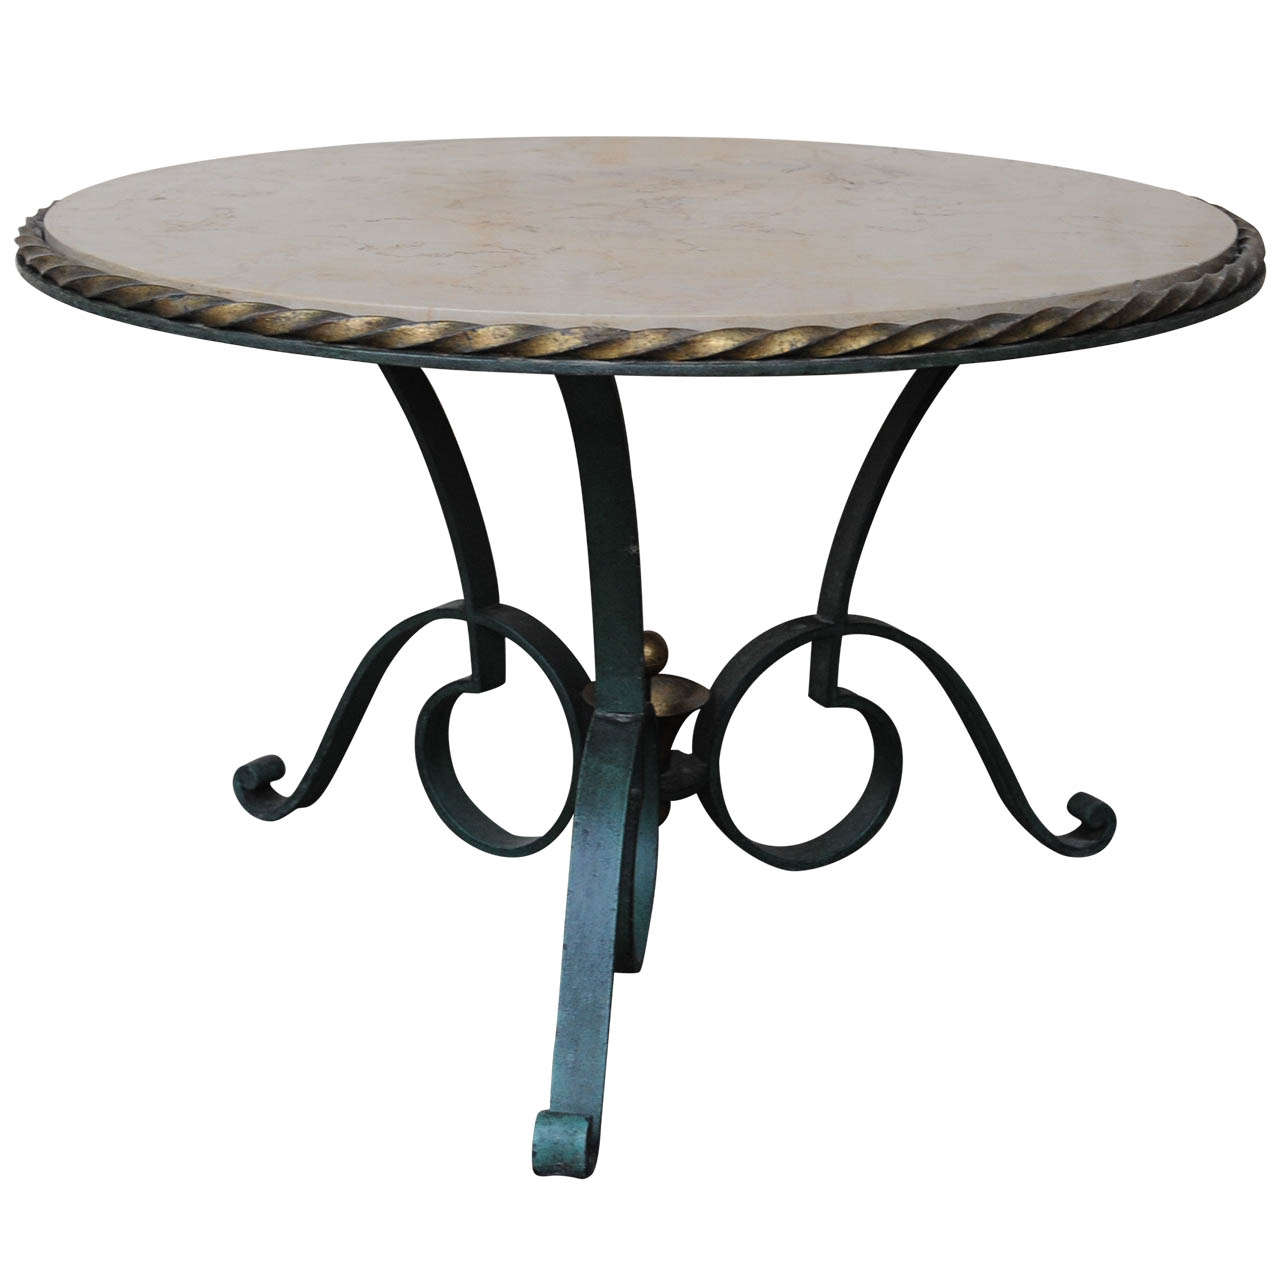 Round wrought iron coffee table by robert merceris at 1stdibs round wrought iron coffee table by robert merceris 1 geotapseo Images